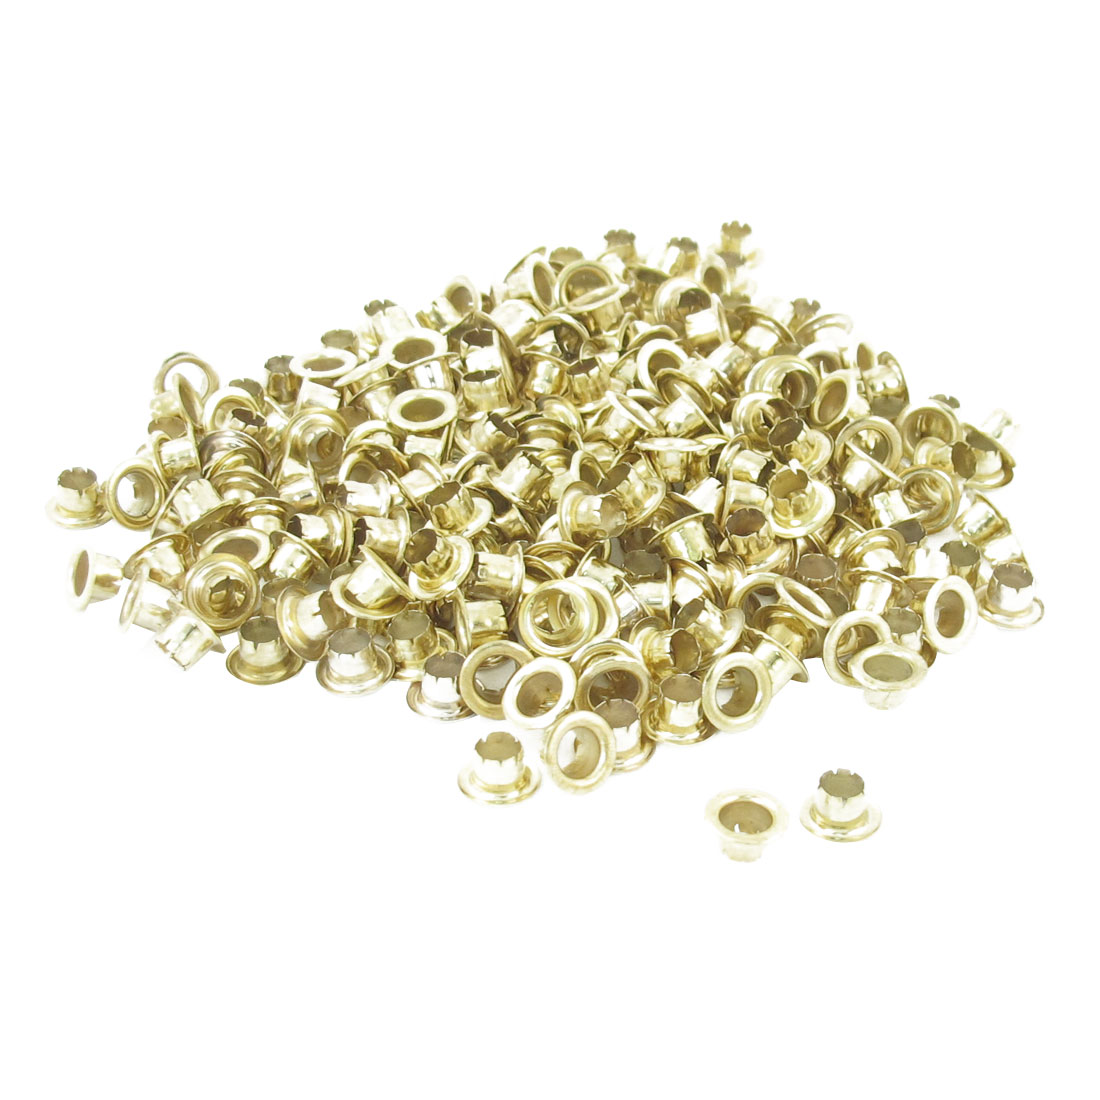 250 Pcs Gold Tone Metallic Round Shaped Eyelet Grommet for Paper